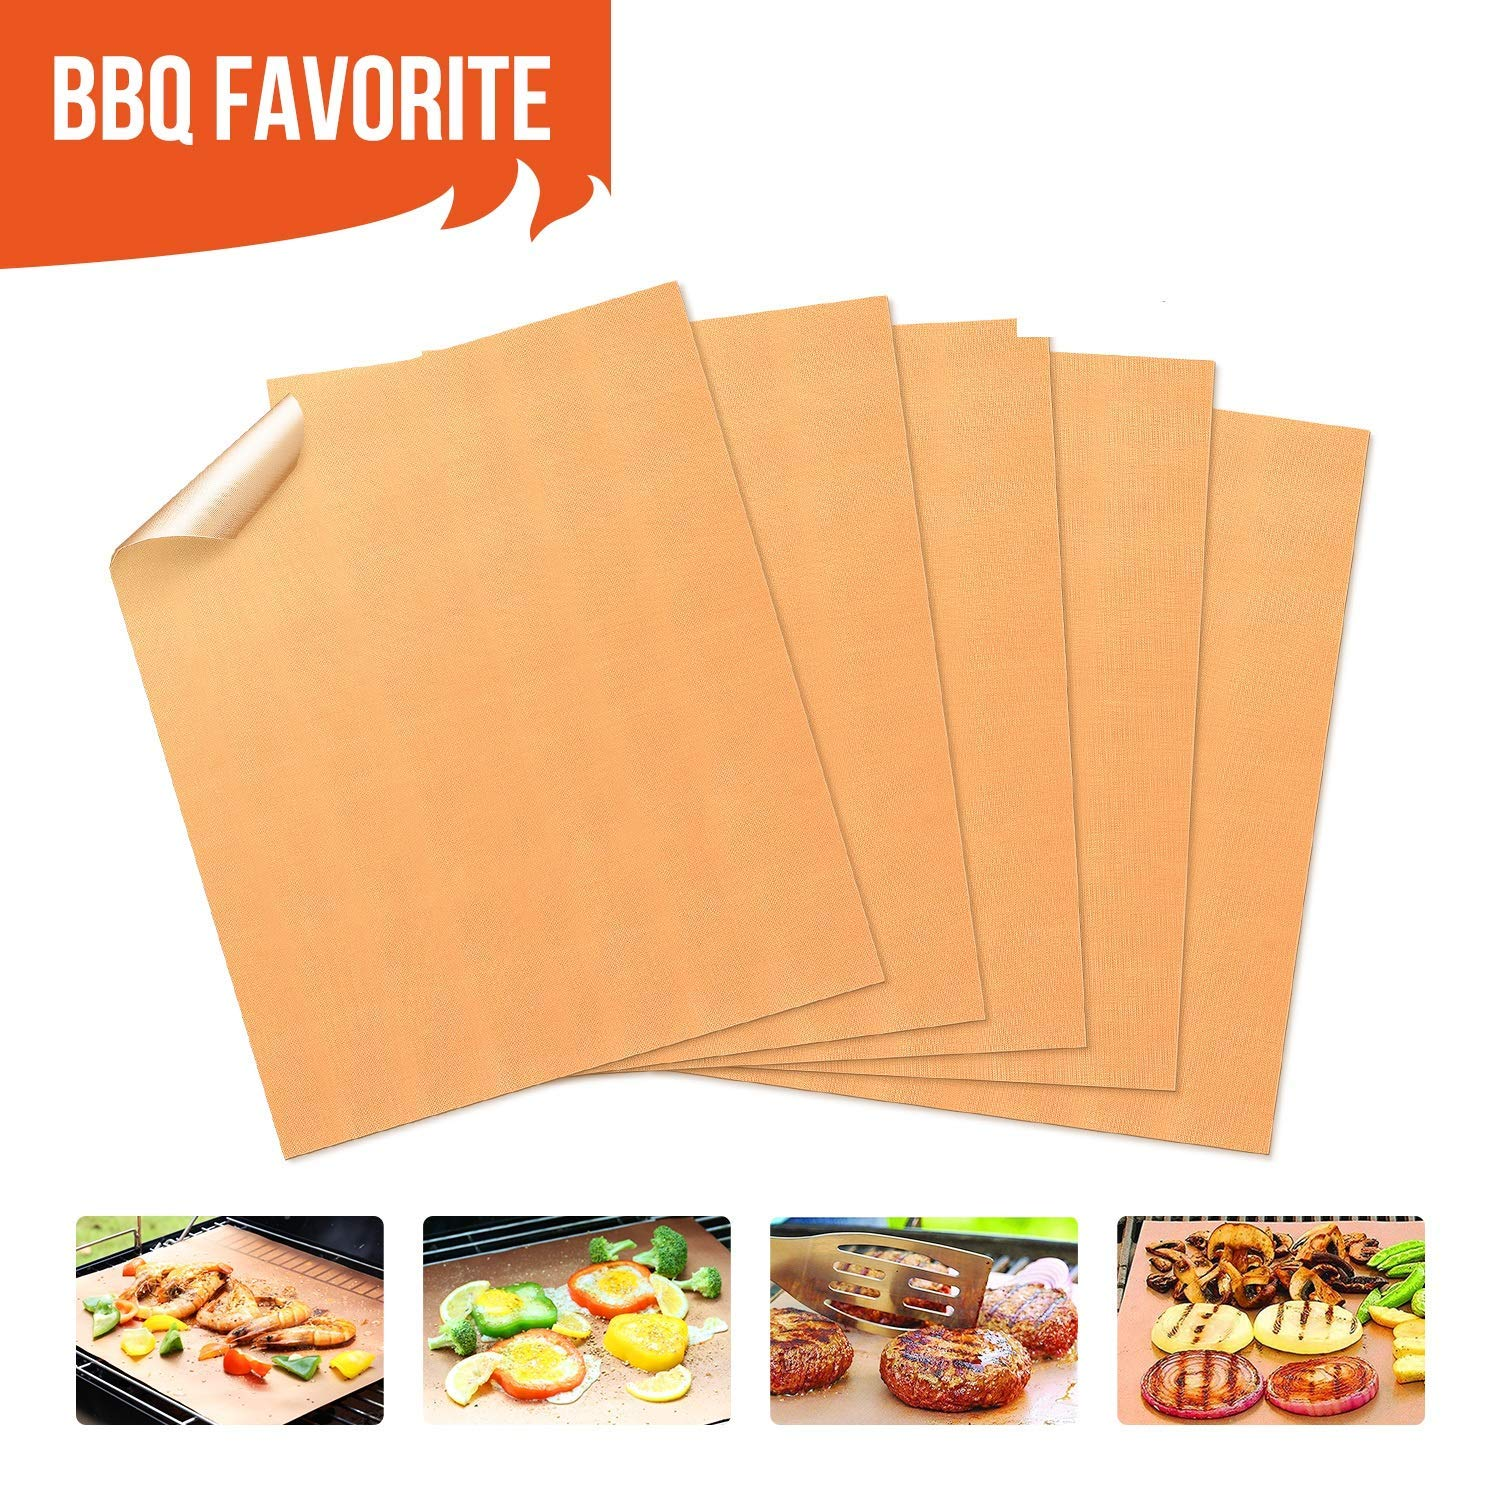 Copper Grill Mats Non Stick BBQ Grill Mat & Bake Mat Set of 5 for Barbecue Grilling & Baking, FDA-Approved, PFOA Free, Heavy Duty, Reusable & Easy to Clean-Suits Gas,Charcoal,Electric Grill and More